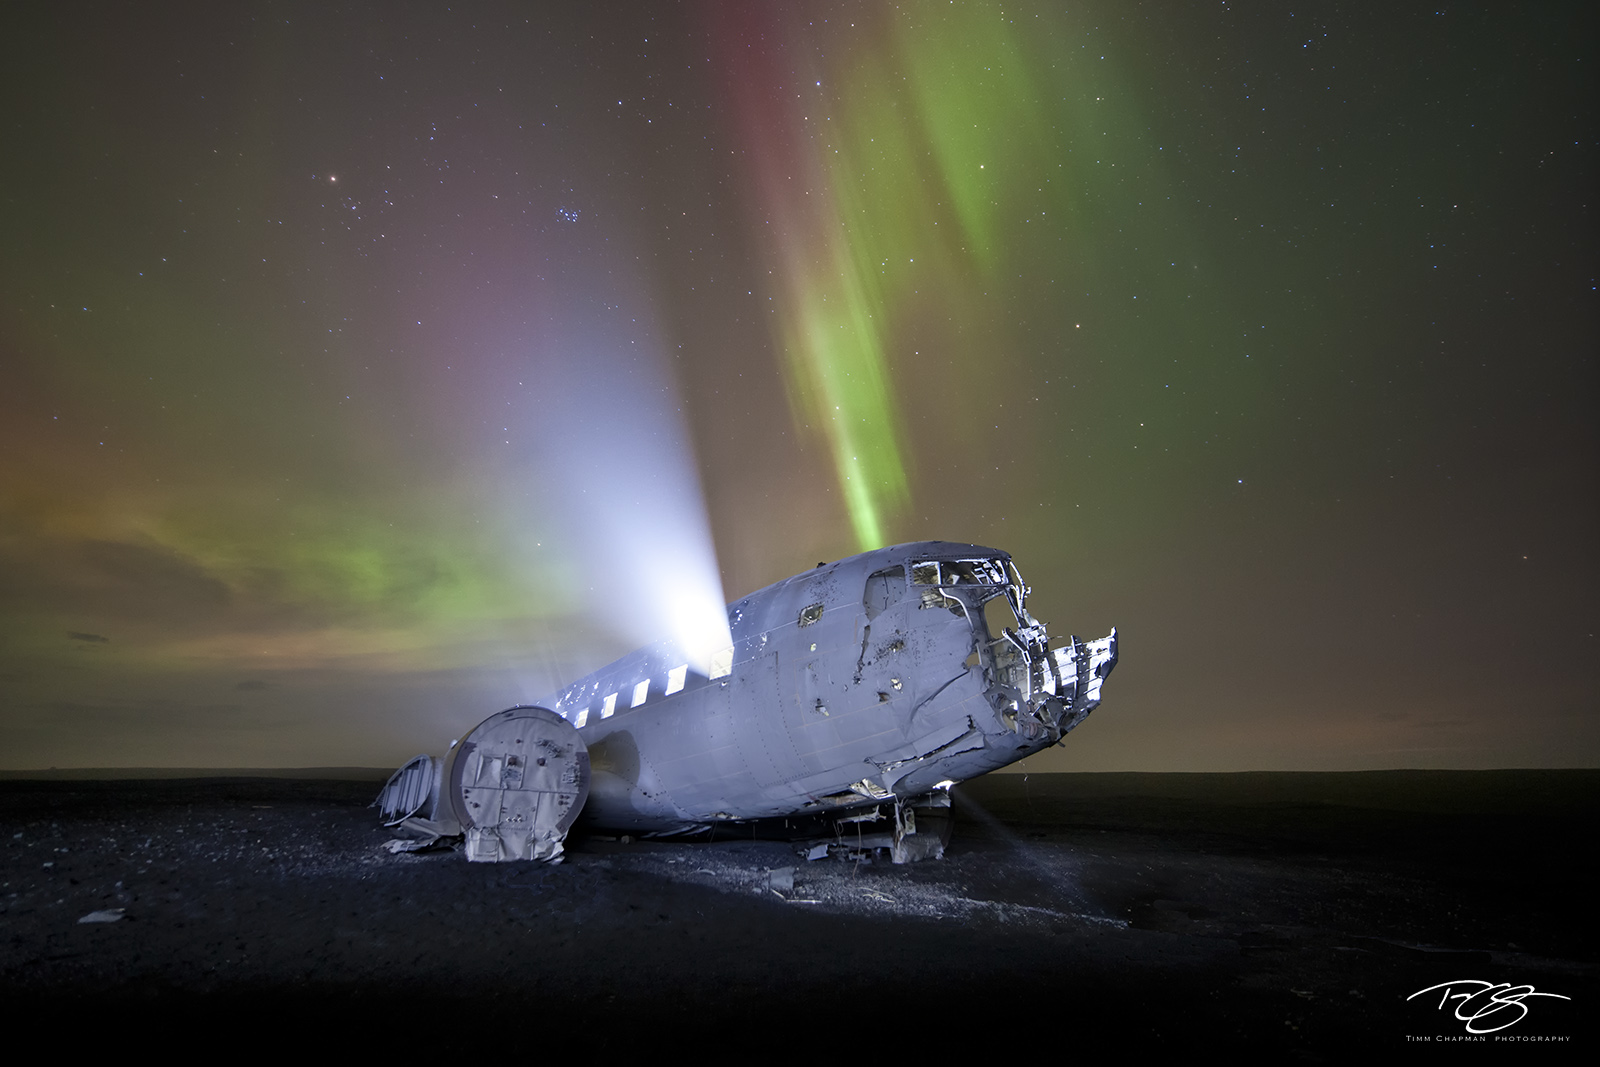 Iceland, aurora, borealis, plane, plane crash, aircraft, dakota, dc-3, apocalypse, apocalyptic, fuselage, light, green, red, stars, northern lights, spooky, spirit, ghostly, souls, haunted, photo